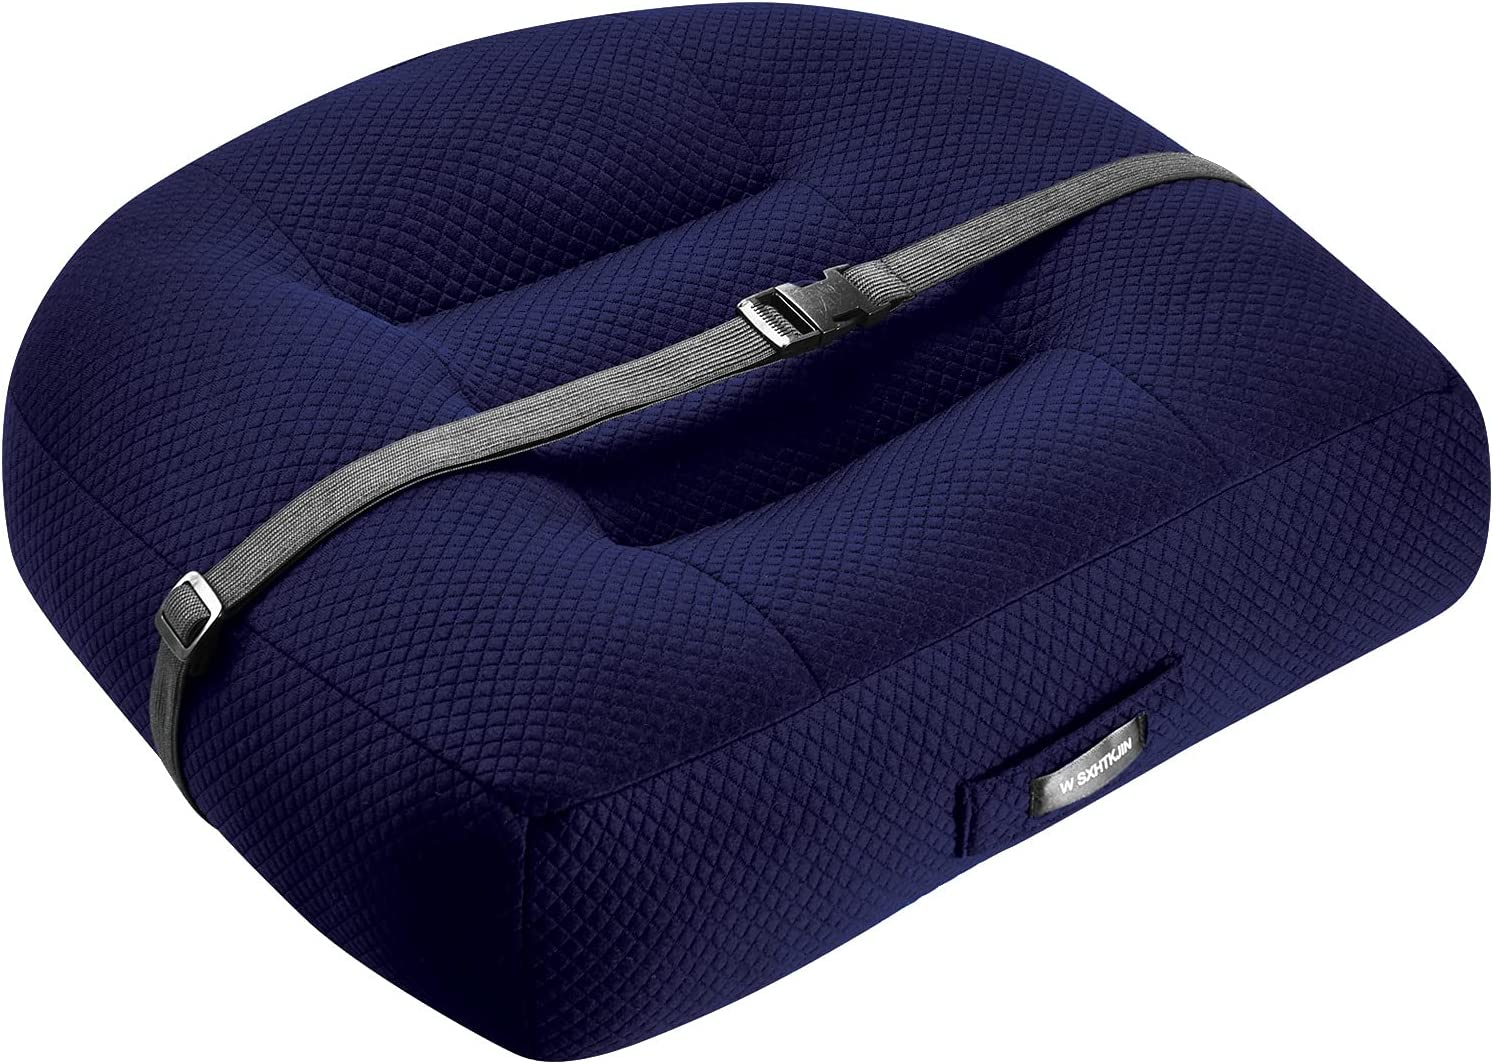 Car Driving seat Cushion, Dwarf Adult Booster seat Cushion, Adult seat Cushion, Truck Driver Thickening Booster Cushion, heightened Office Chair Cushion, Suitable for Cars, Trucks, Offices, etc.